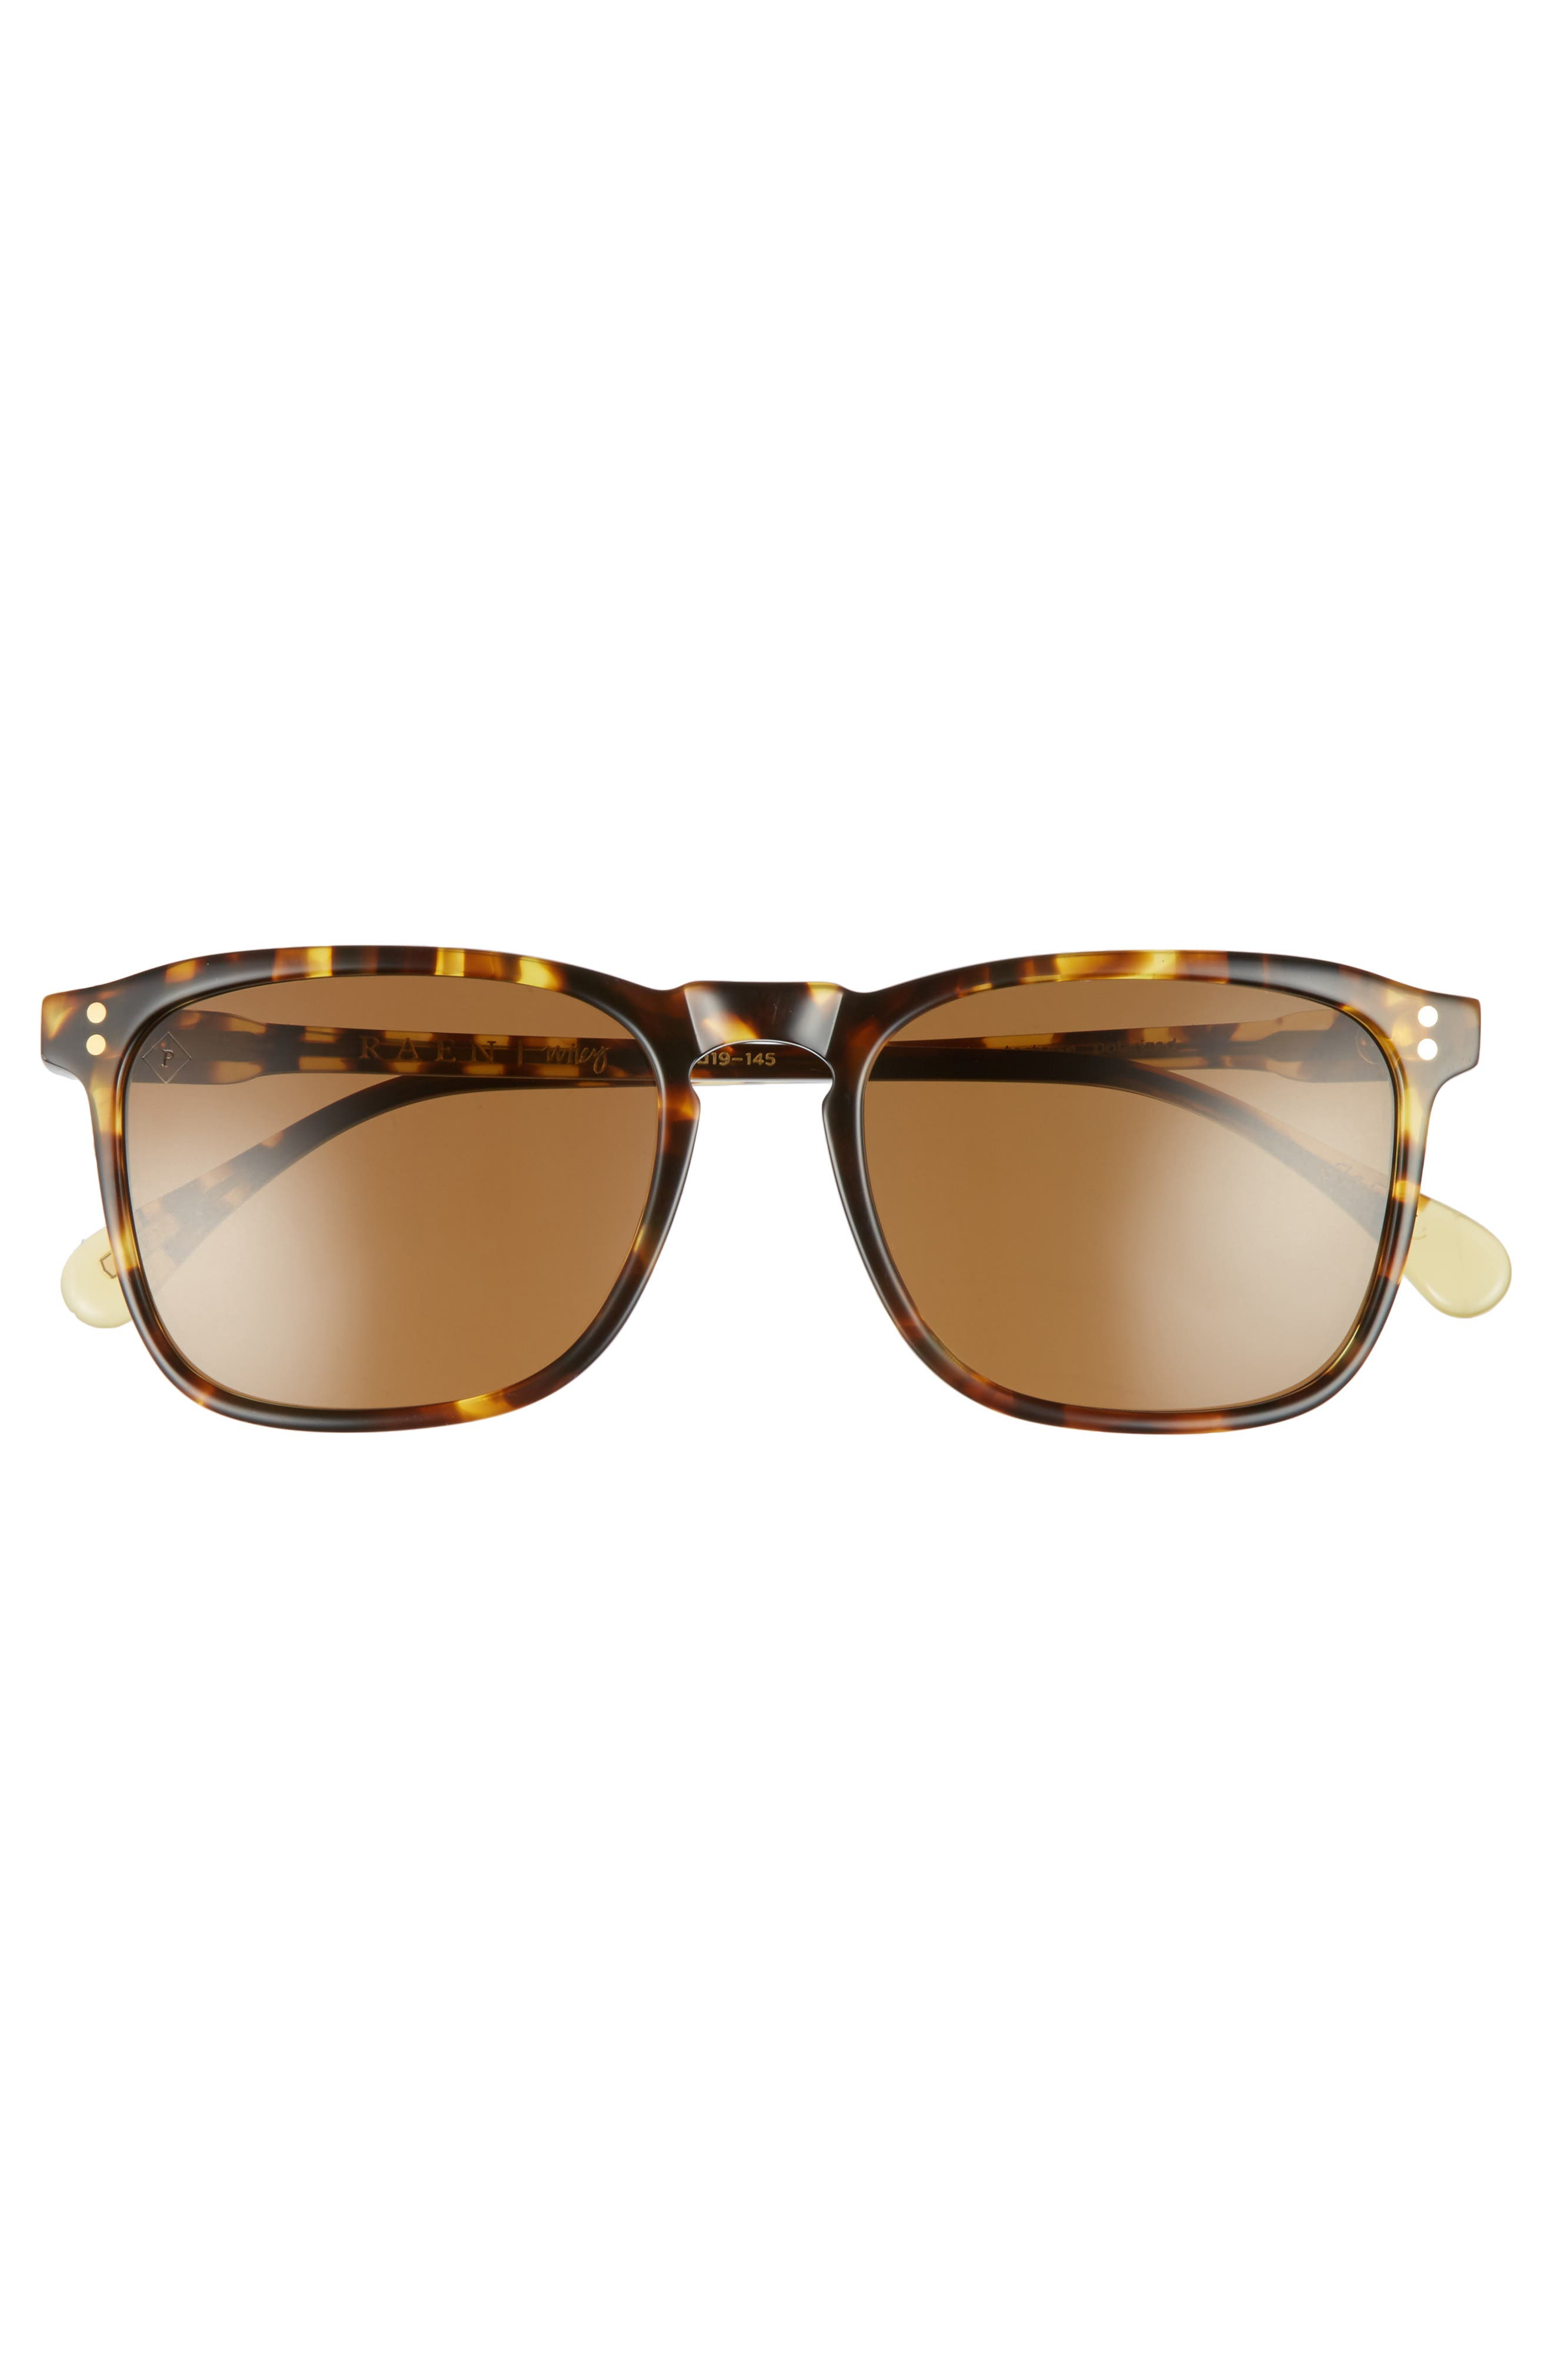 Wiley 54mm Polarized Sunglasses,                             Alternate thumbnail 2, color,                             205